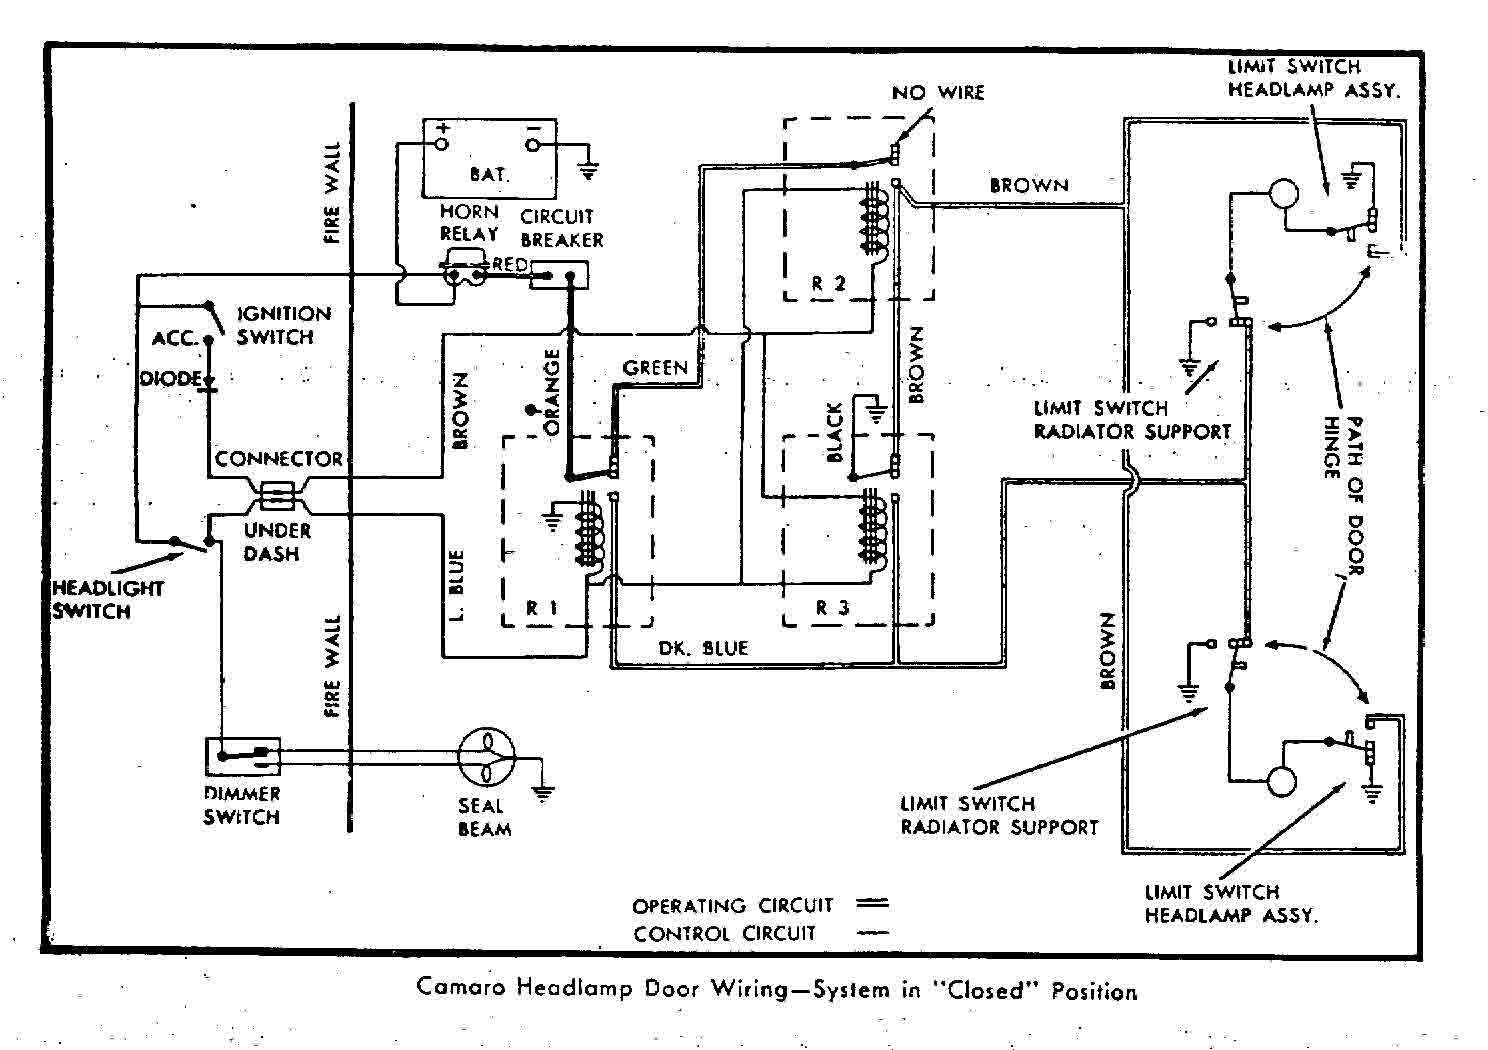 69 Camaro Fuse Box Diagram Image Wiring Sample Mustang Engine 80 Detailed Schematics 1970 Chevelle 1968